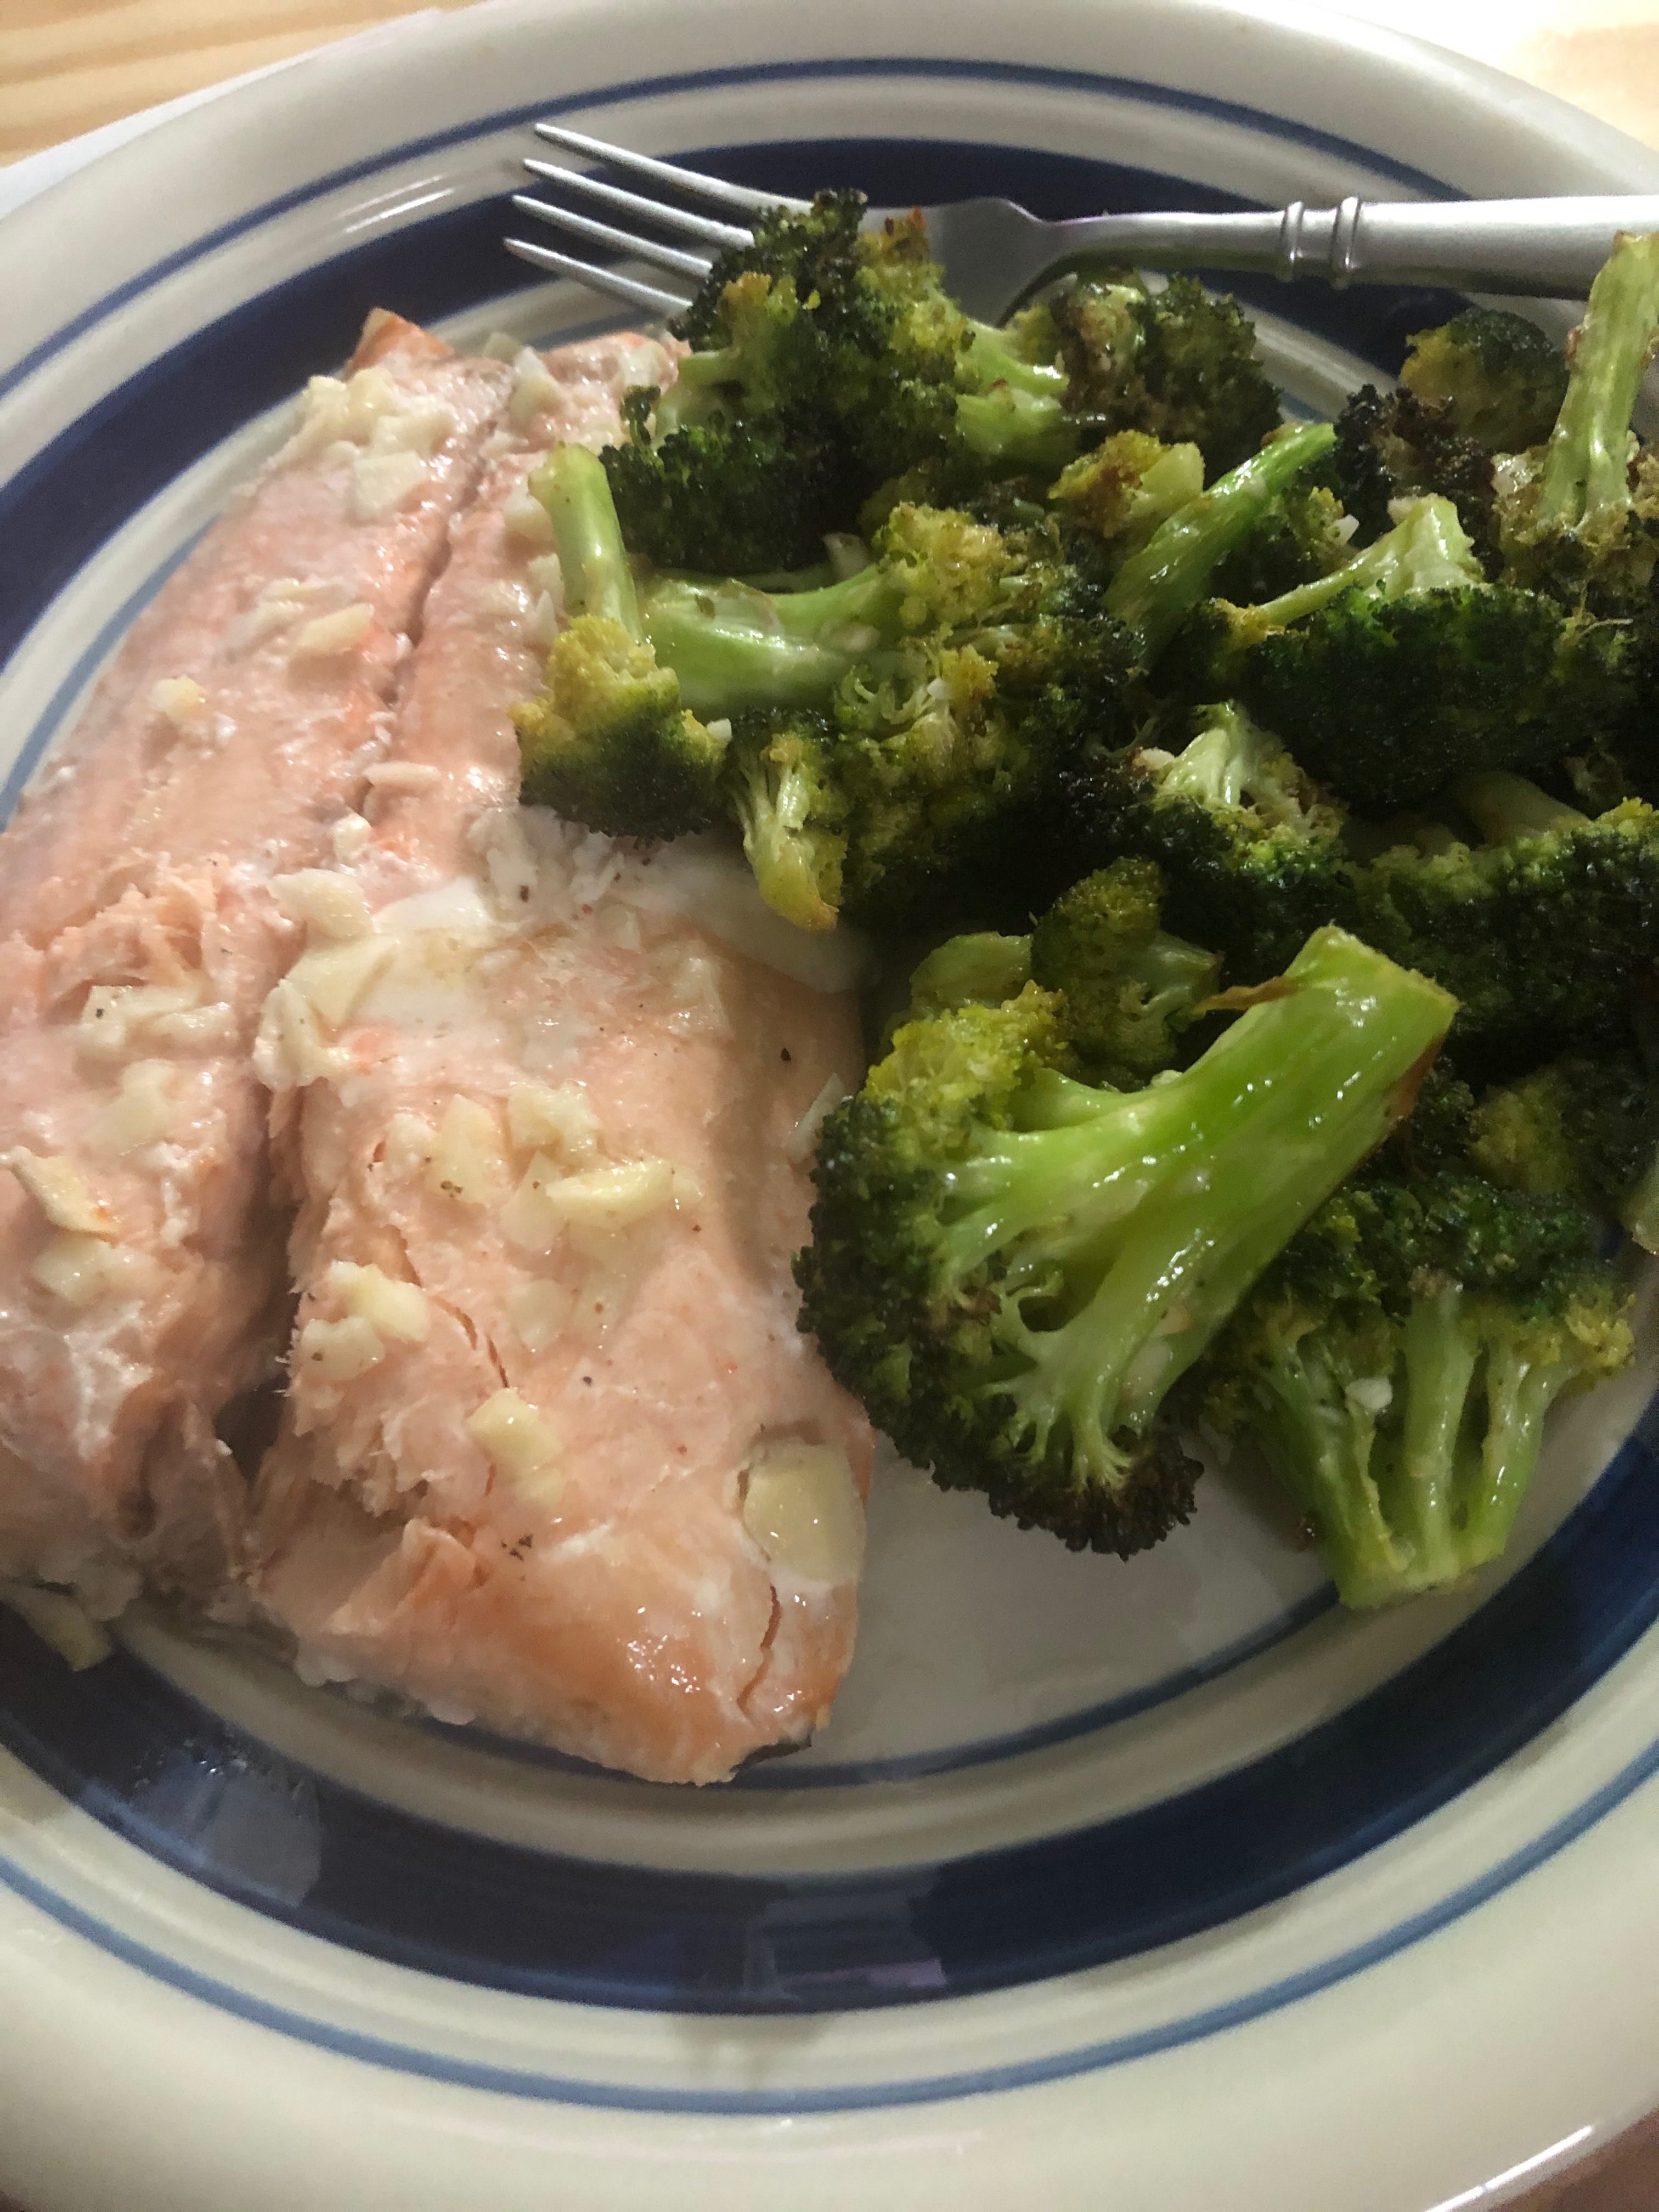 Salmon with air fried broccoli